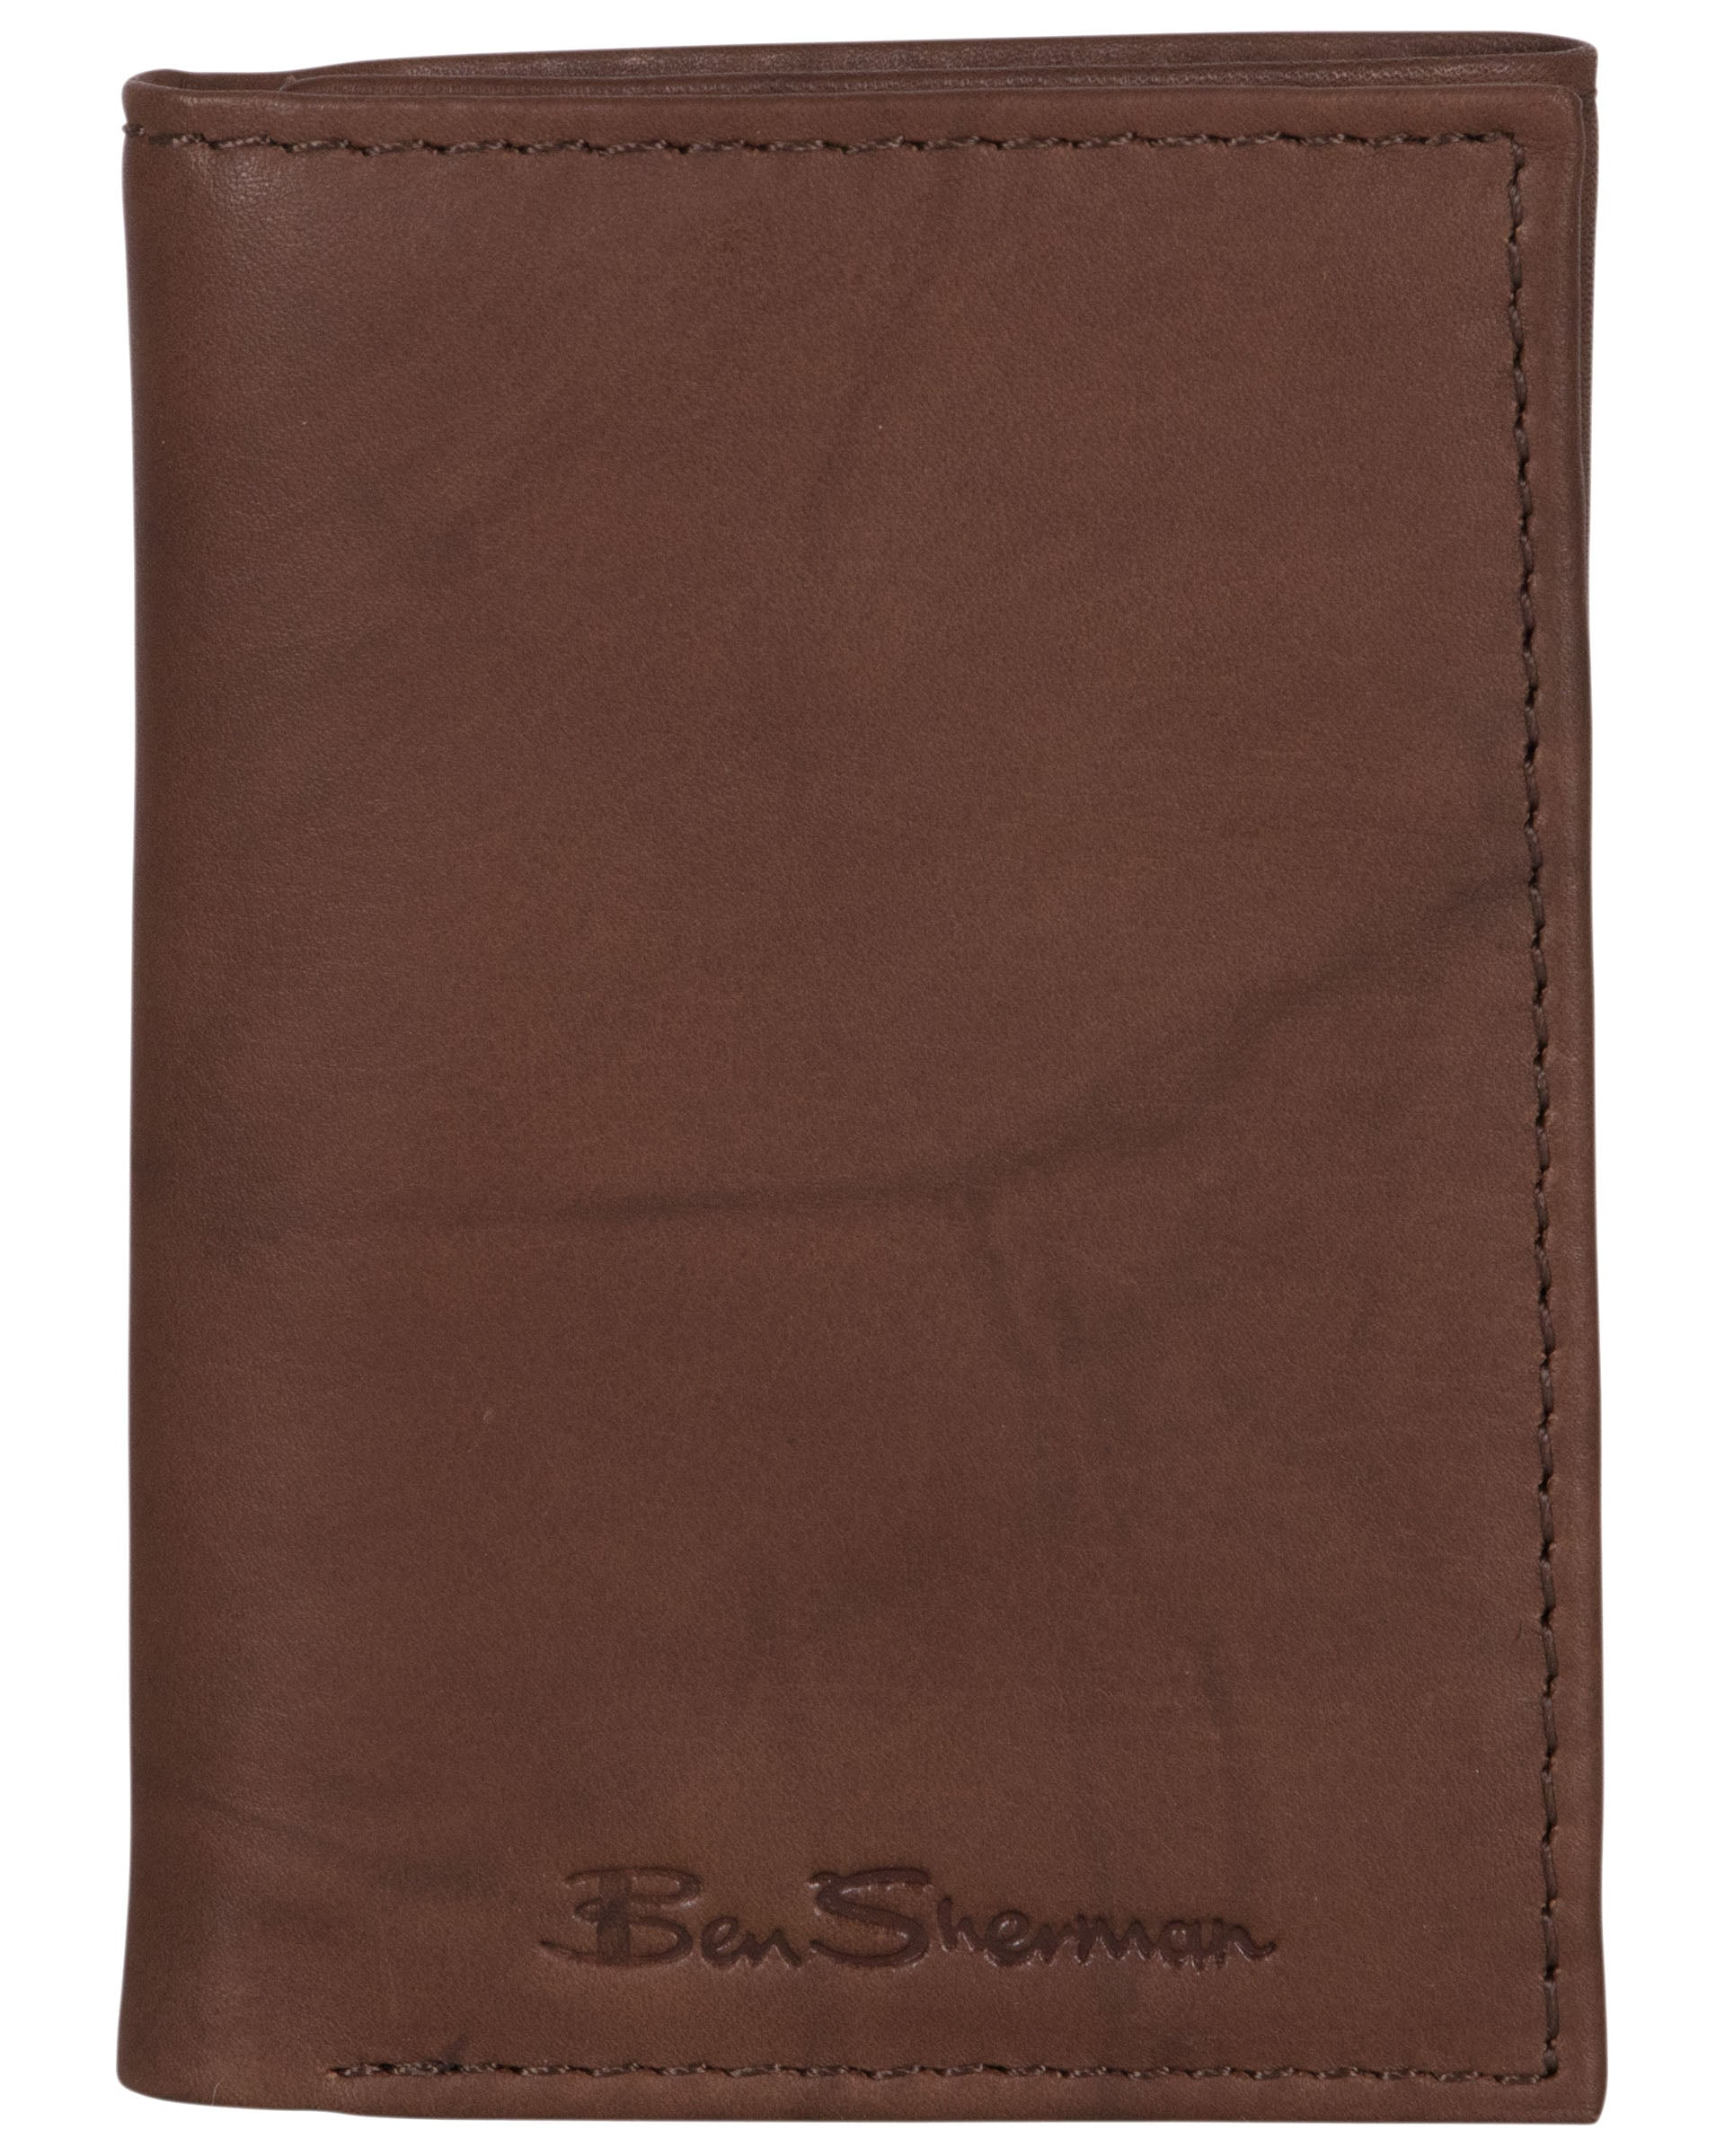 Manchester Marble Crunch Leather Trifold Wallet - Brown